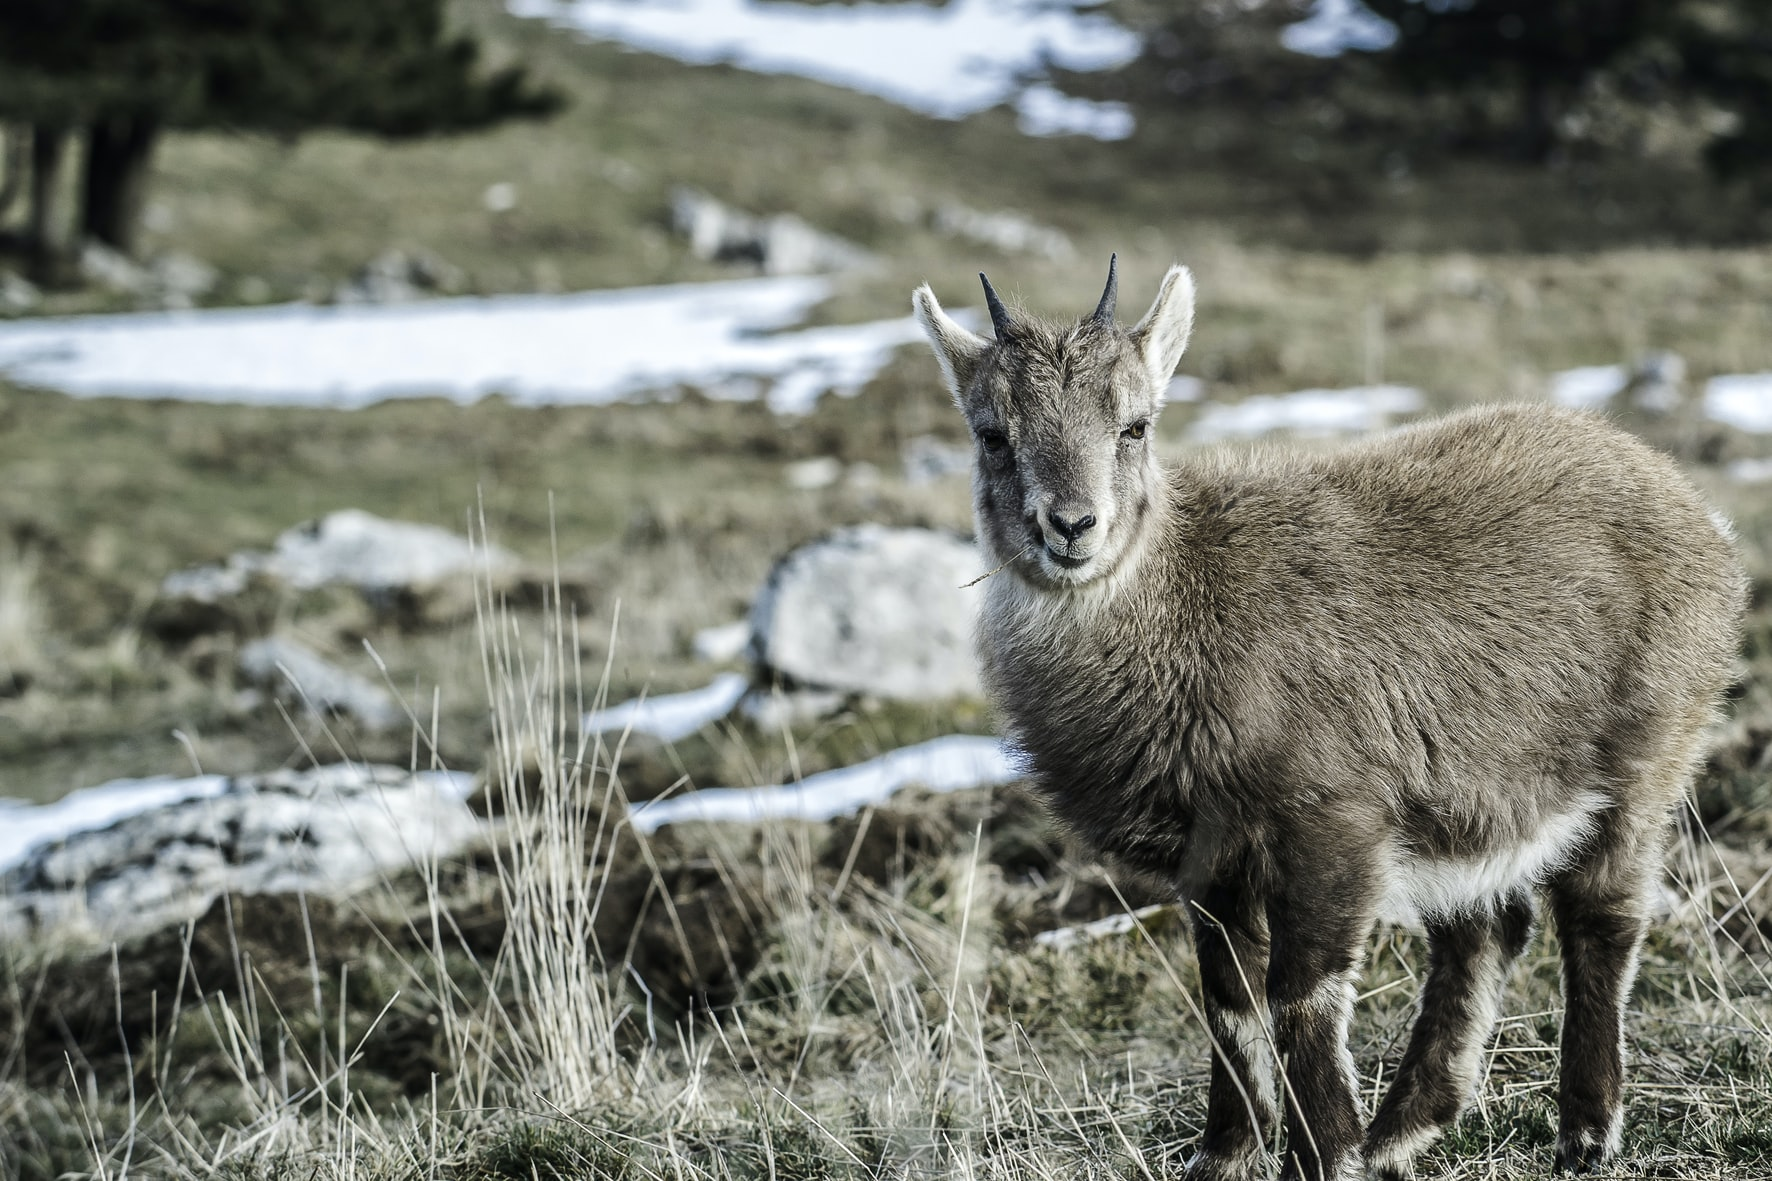 A wild goat staring into the distance on Point-I Val-de-Travers / Creux du Van with snow patches.